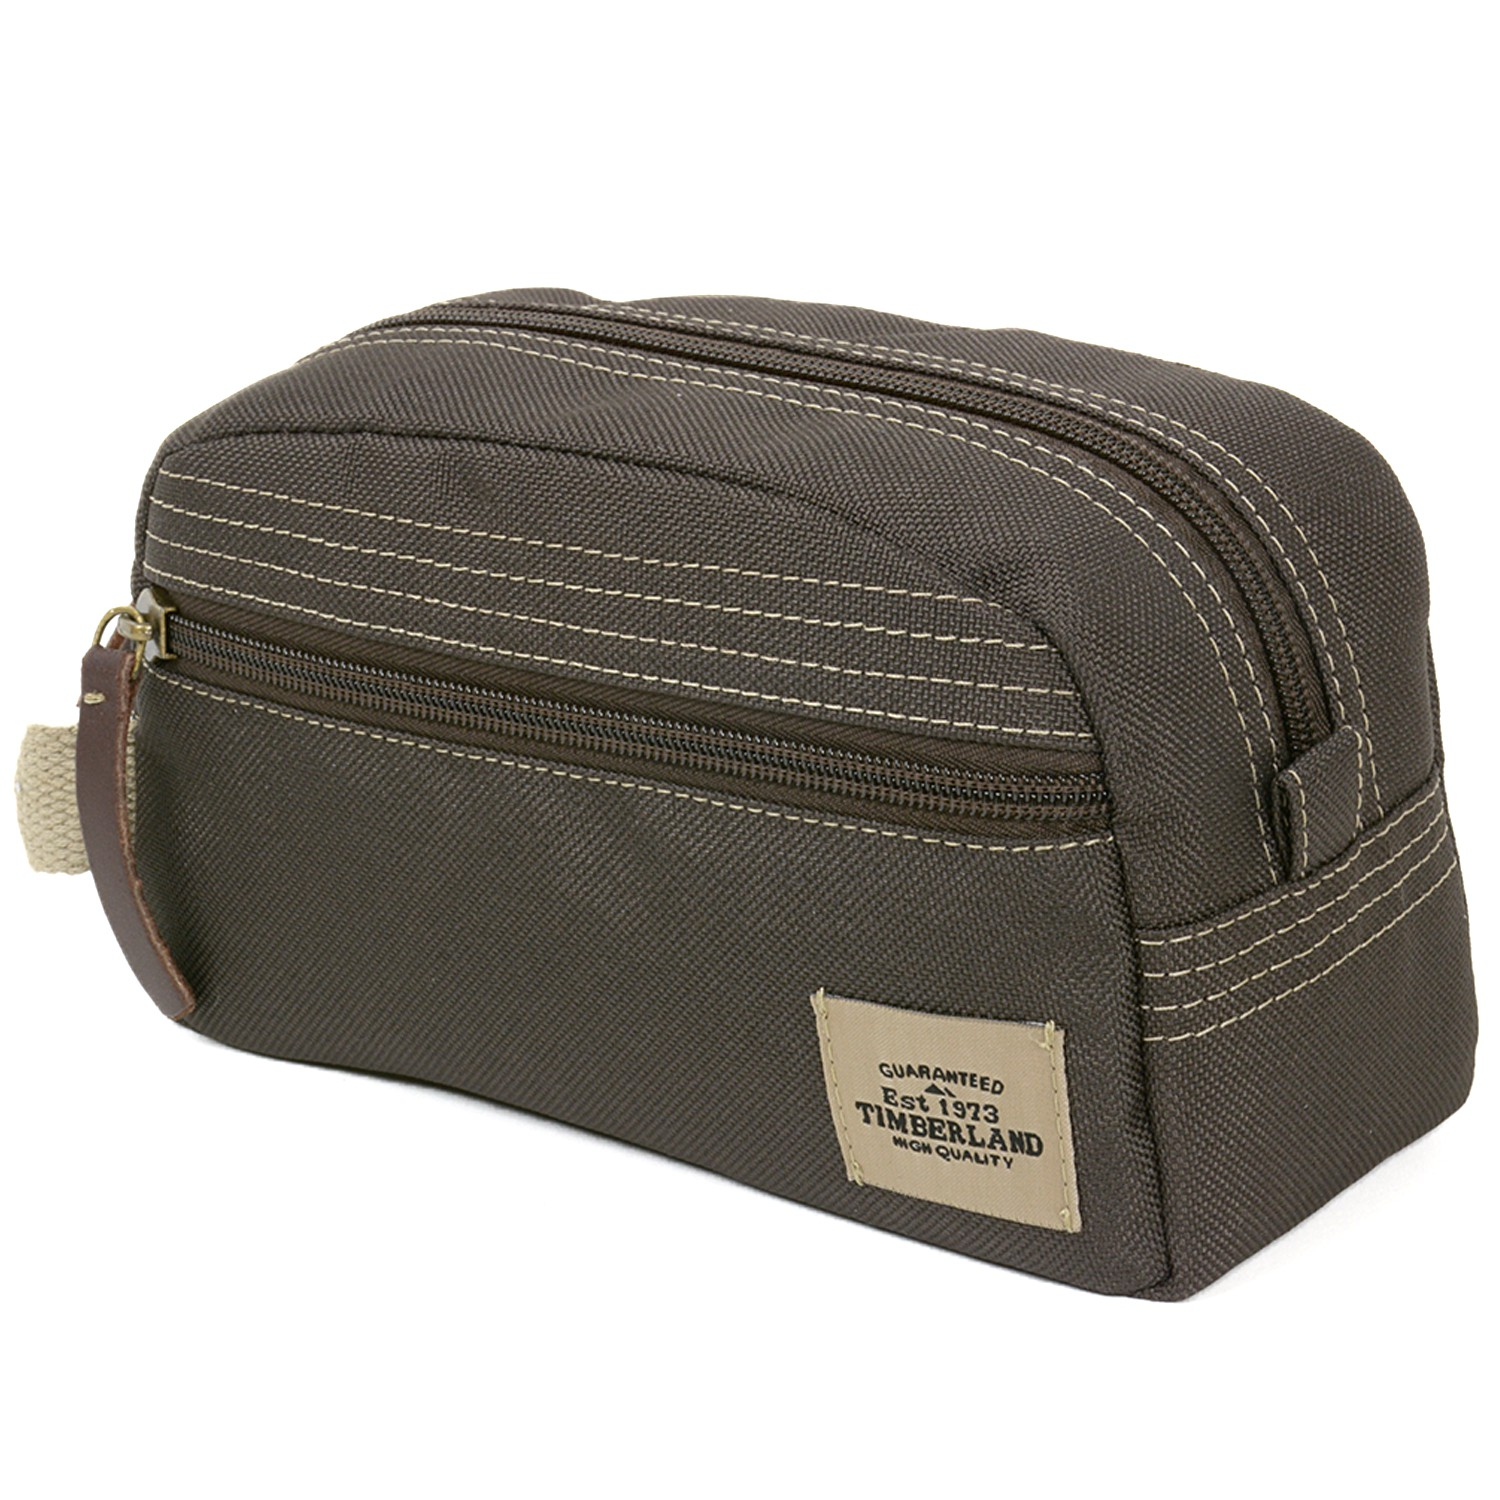 24753a61540c Timberland Travel Kit Toiletry Bag Overnight Handle Case Canvas ...